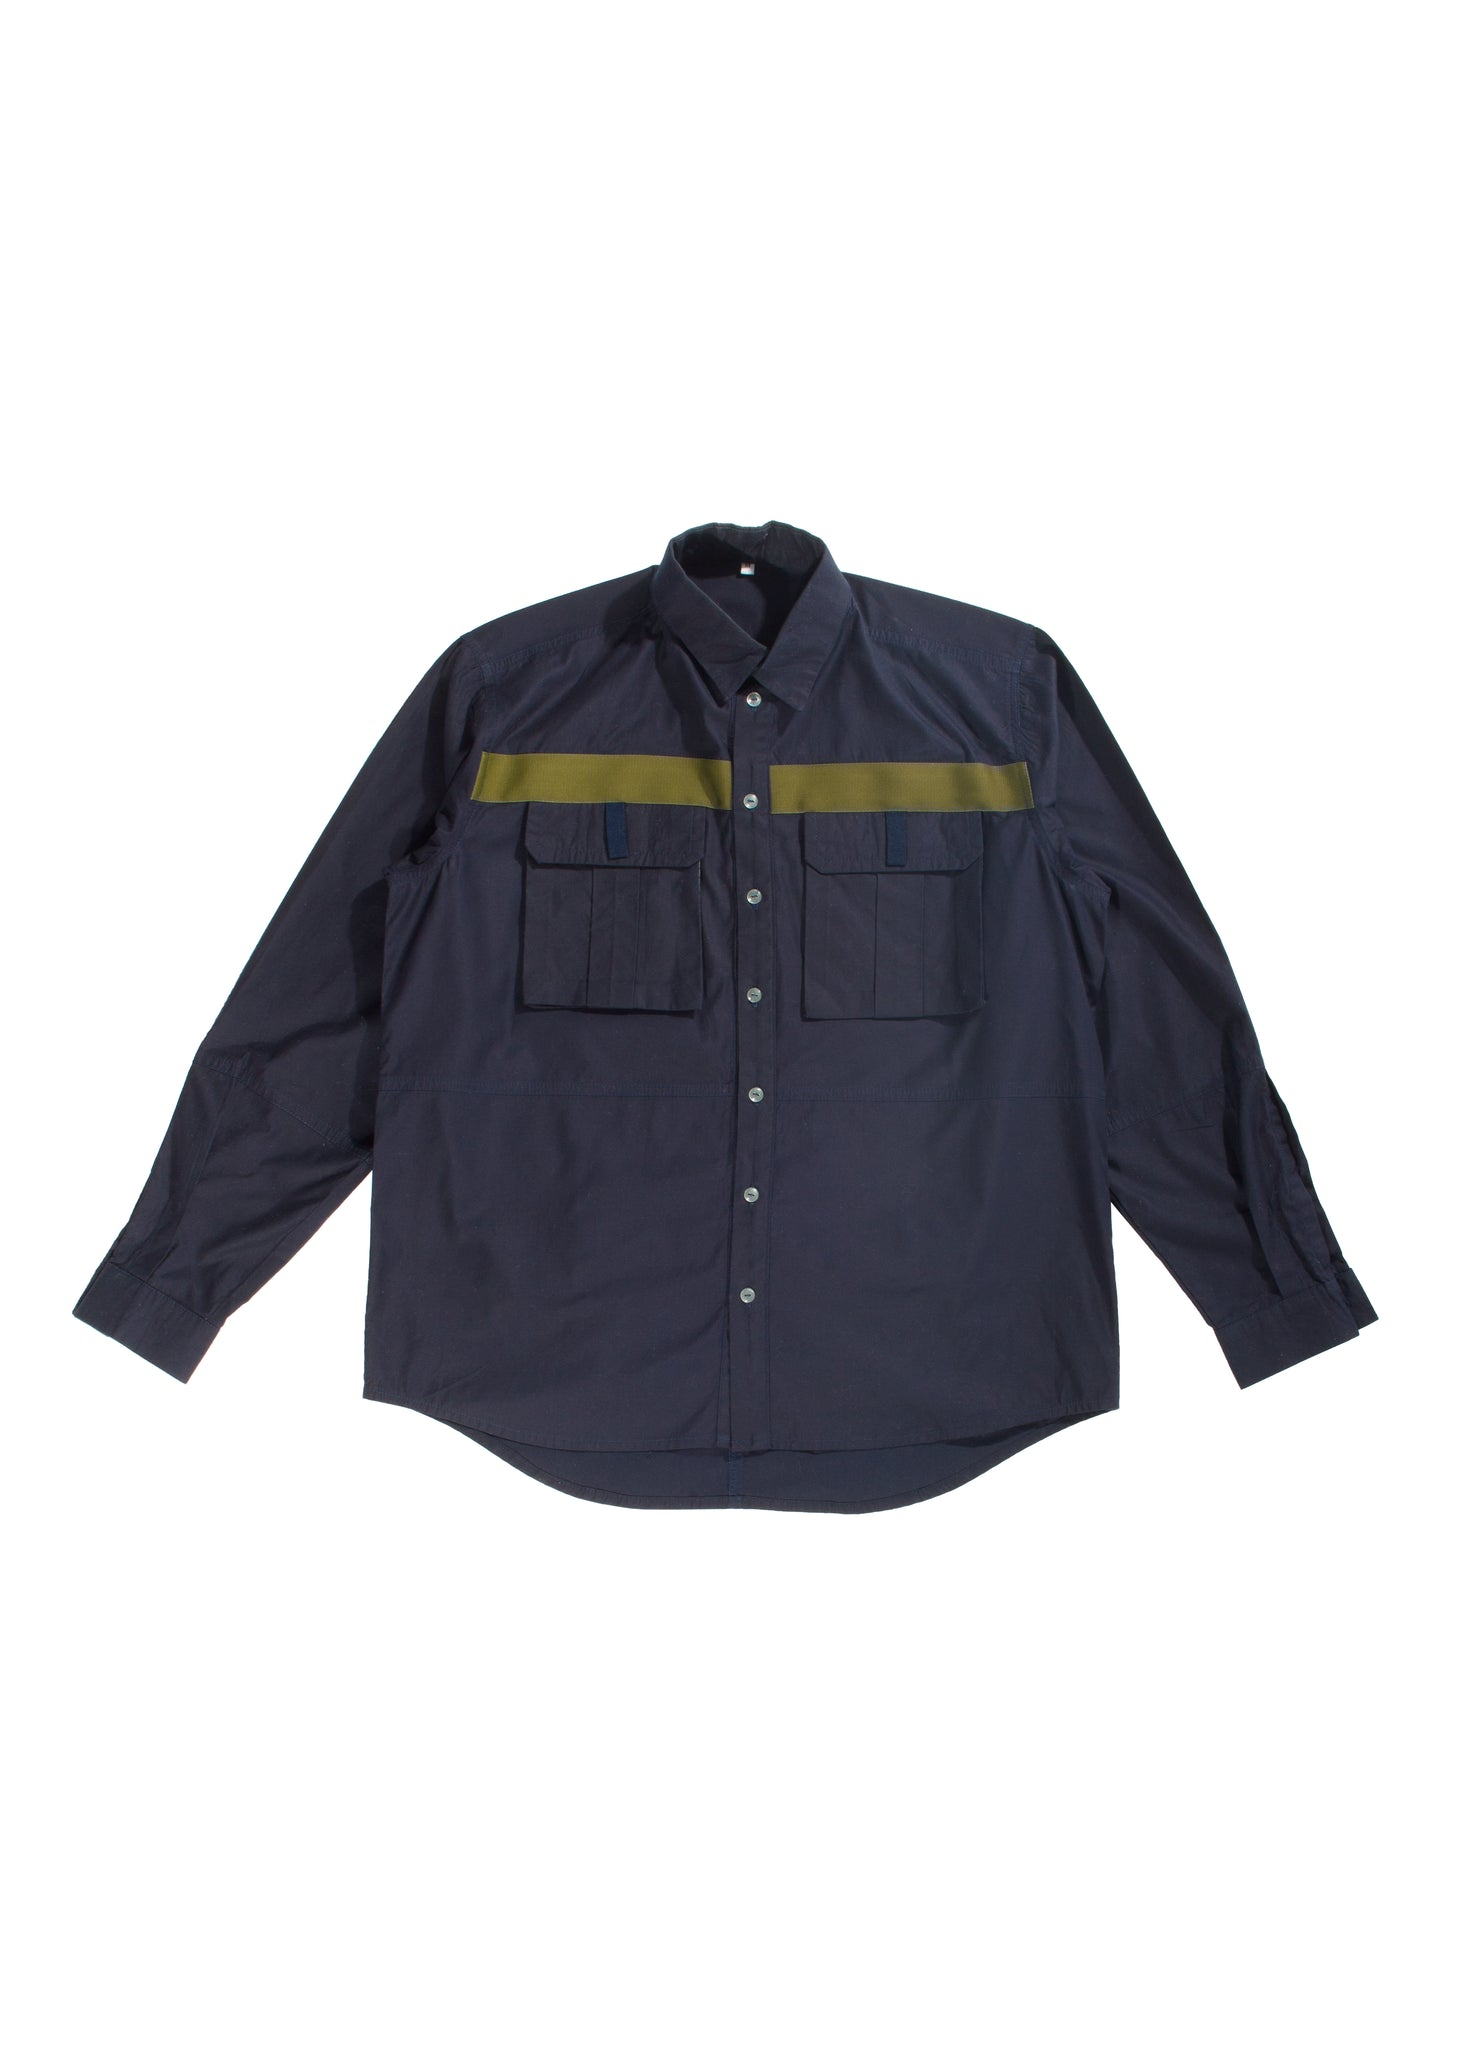 Xhosa - Straight fit navy cotton shirt with back pocket